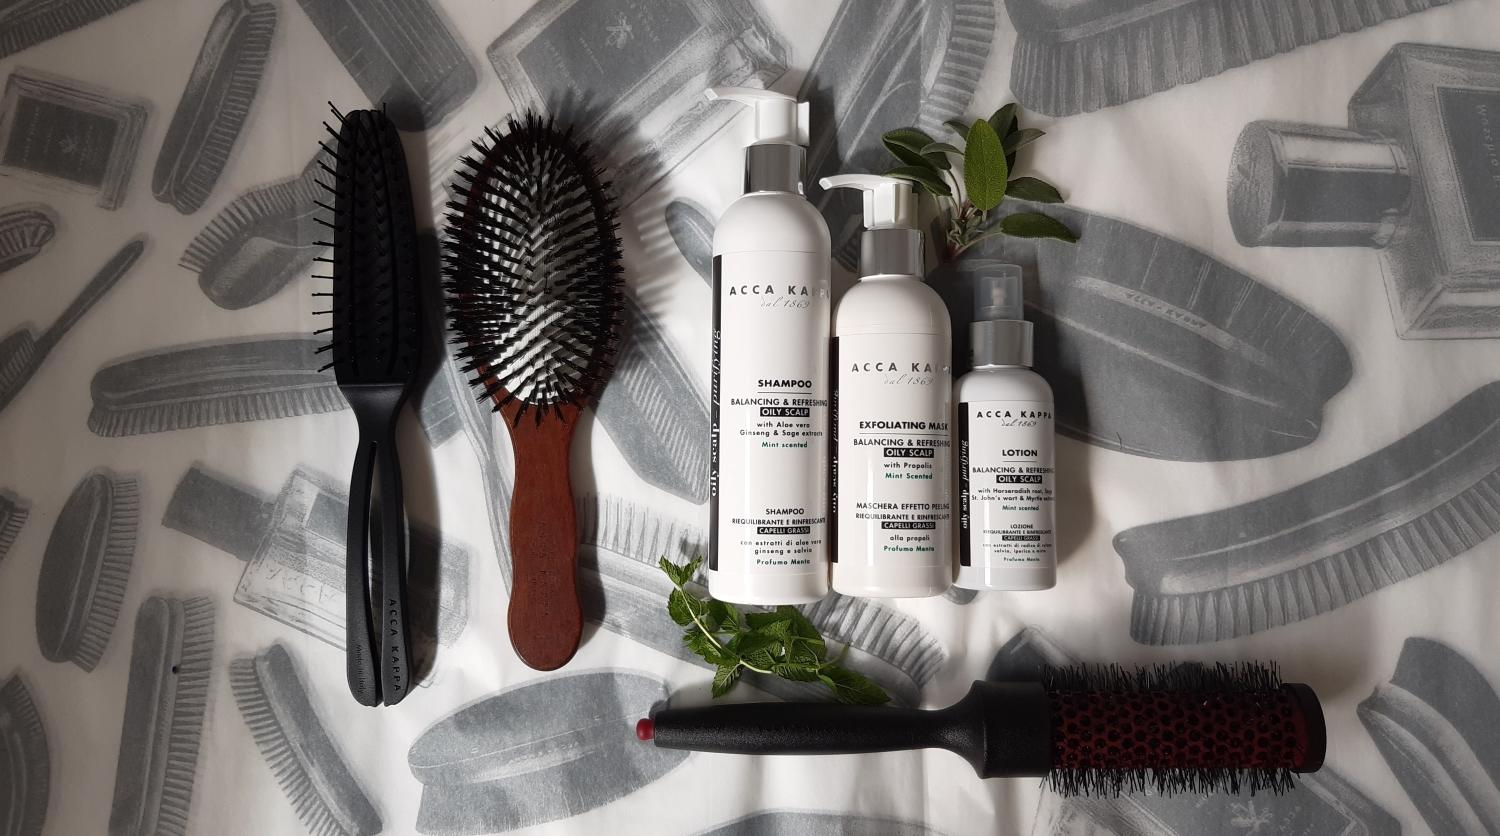 Pictured from left to right: The Airy 2, Pneumatic Pure Bristle Brush, The Balancing & Refreshing Shampoo, The Balancing & Refreshing Scalp Exfoliating Mask, The Balancing & Refreshing Lotion and The Grip & Gloss Styling Brush by ACCA KAPPA